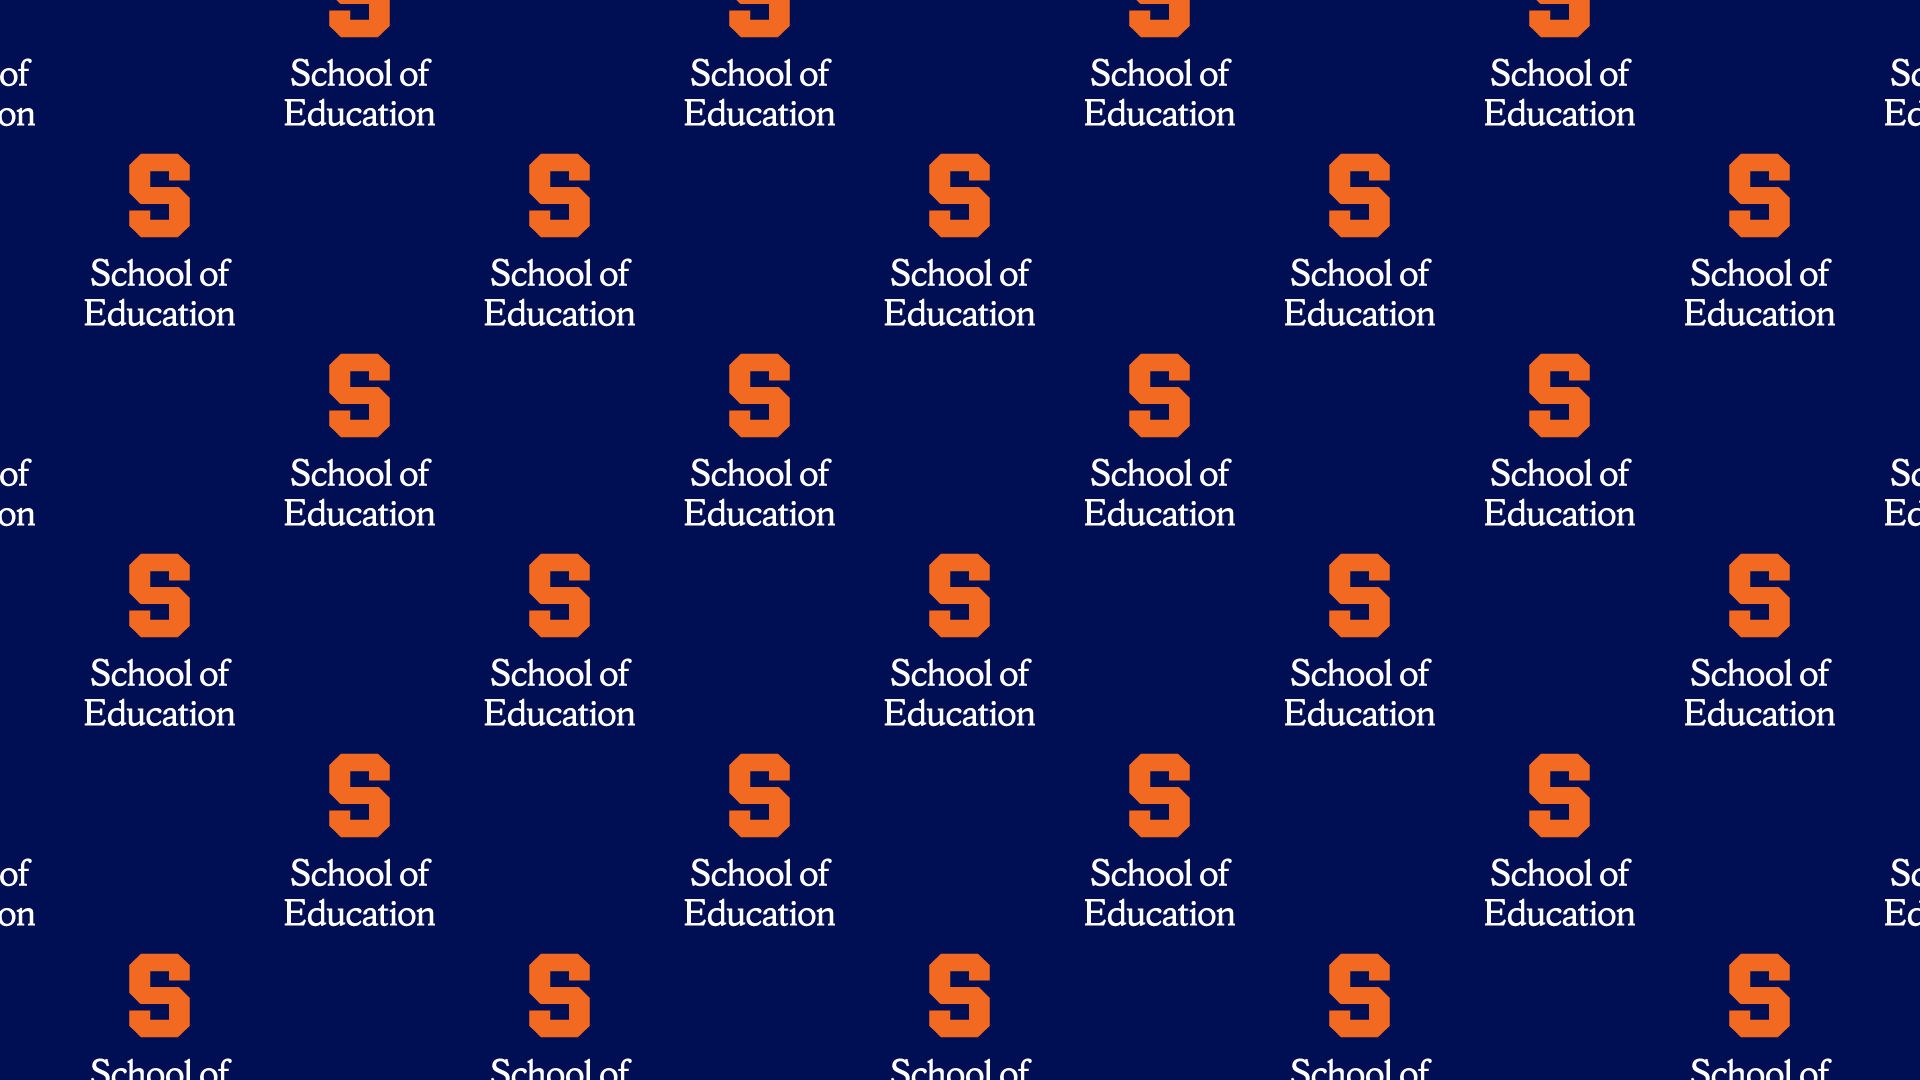 repeated school of education logo on a blue background